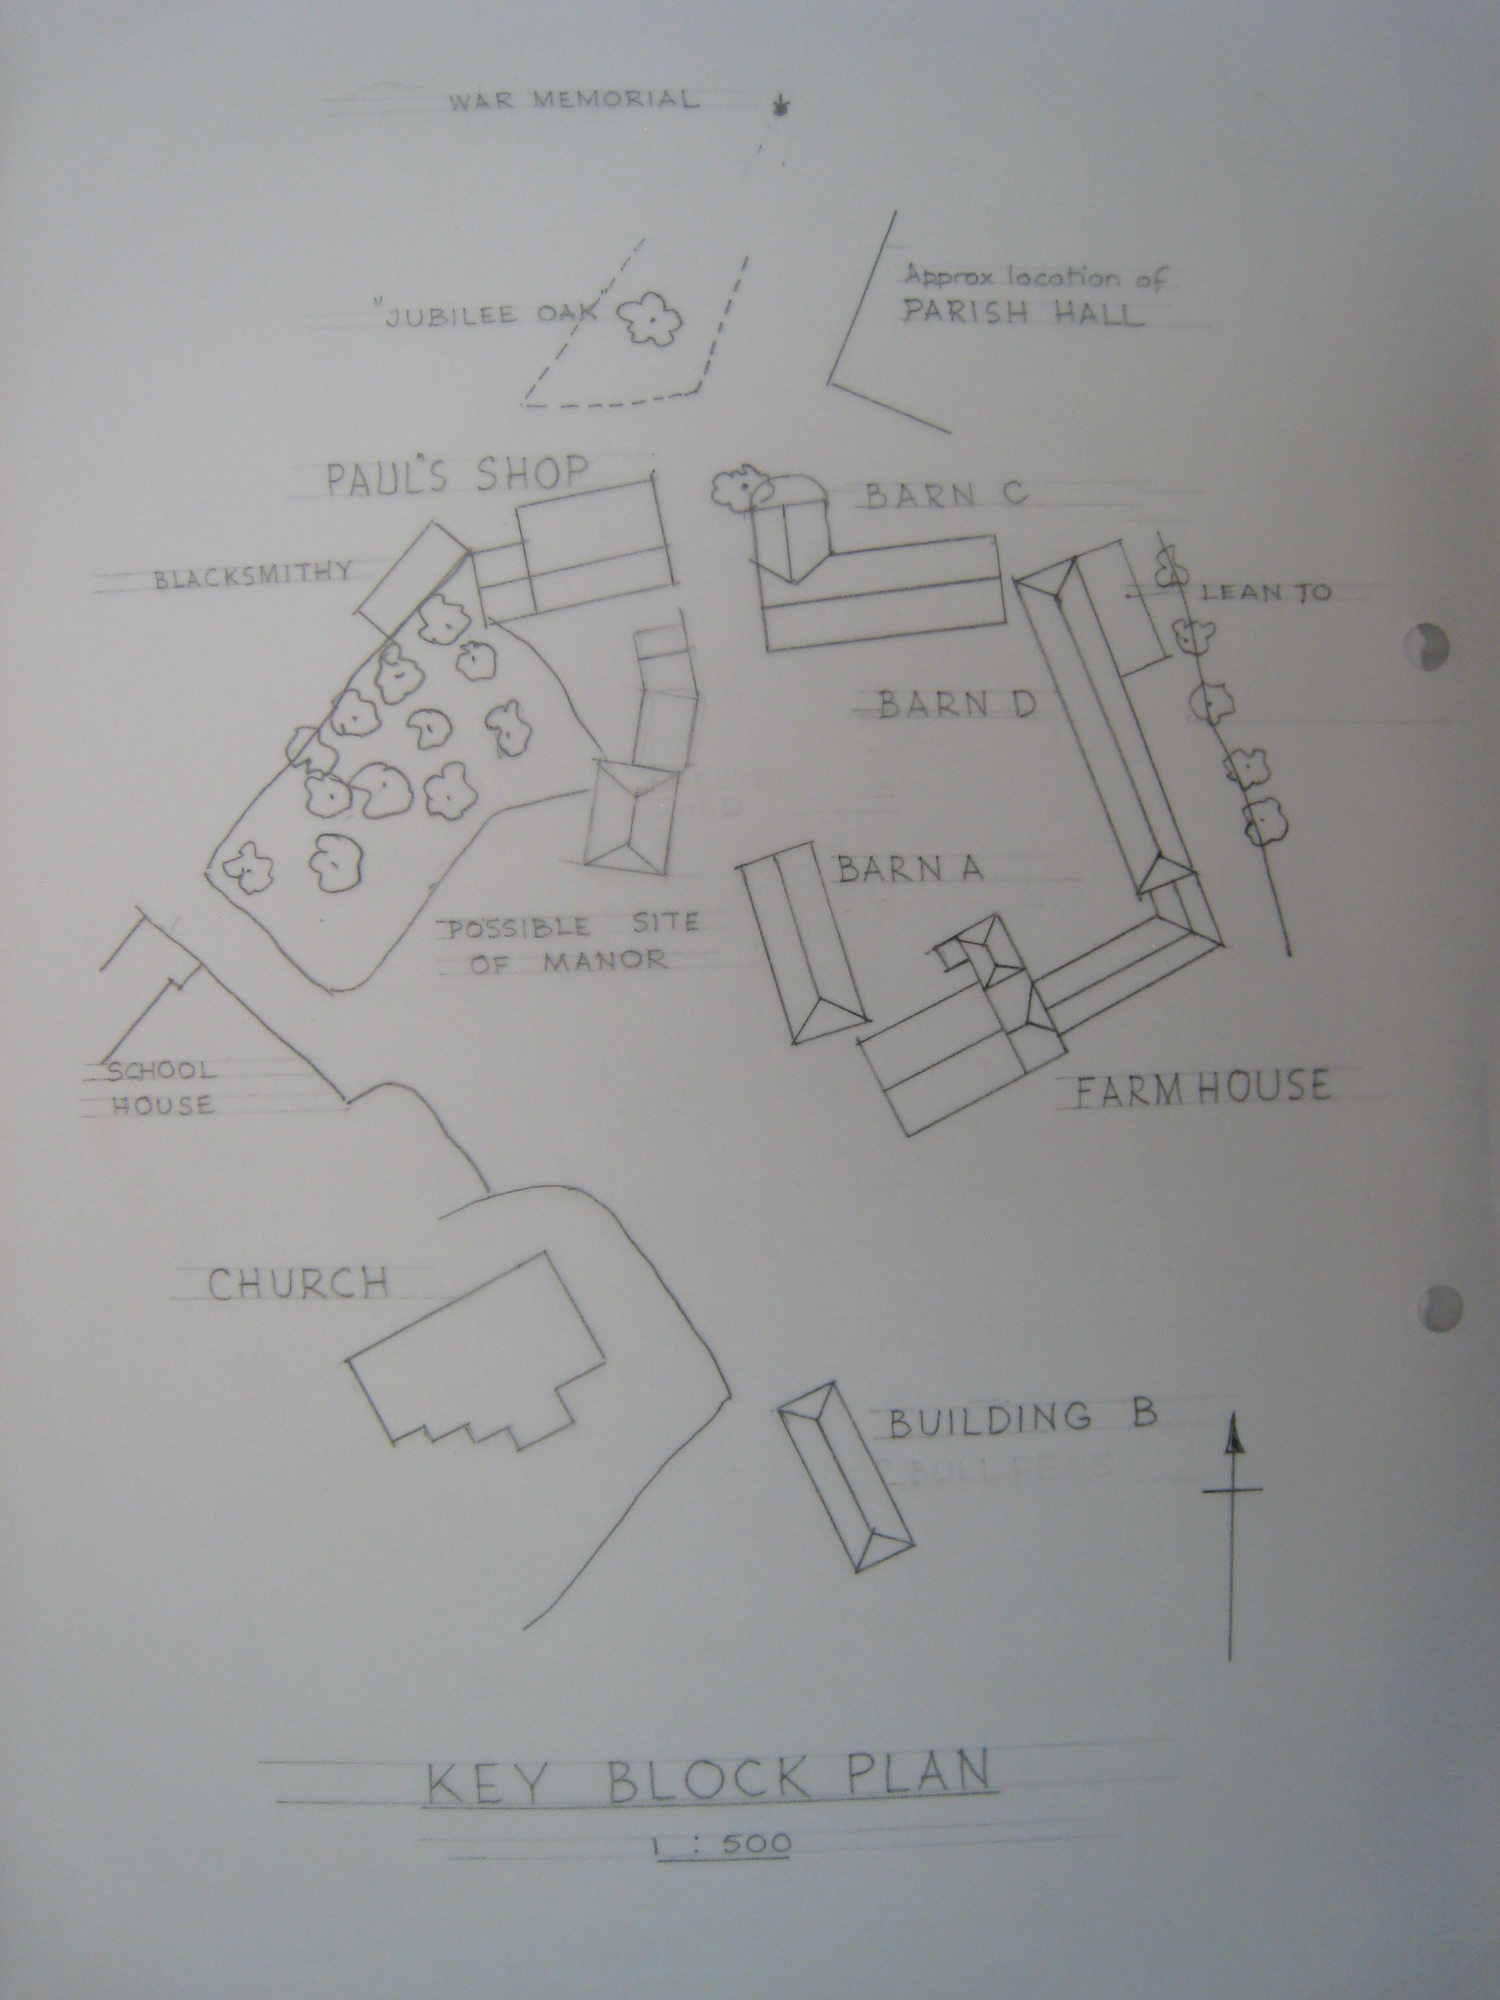 Homeliving and Paul's Shop, plan